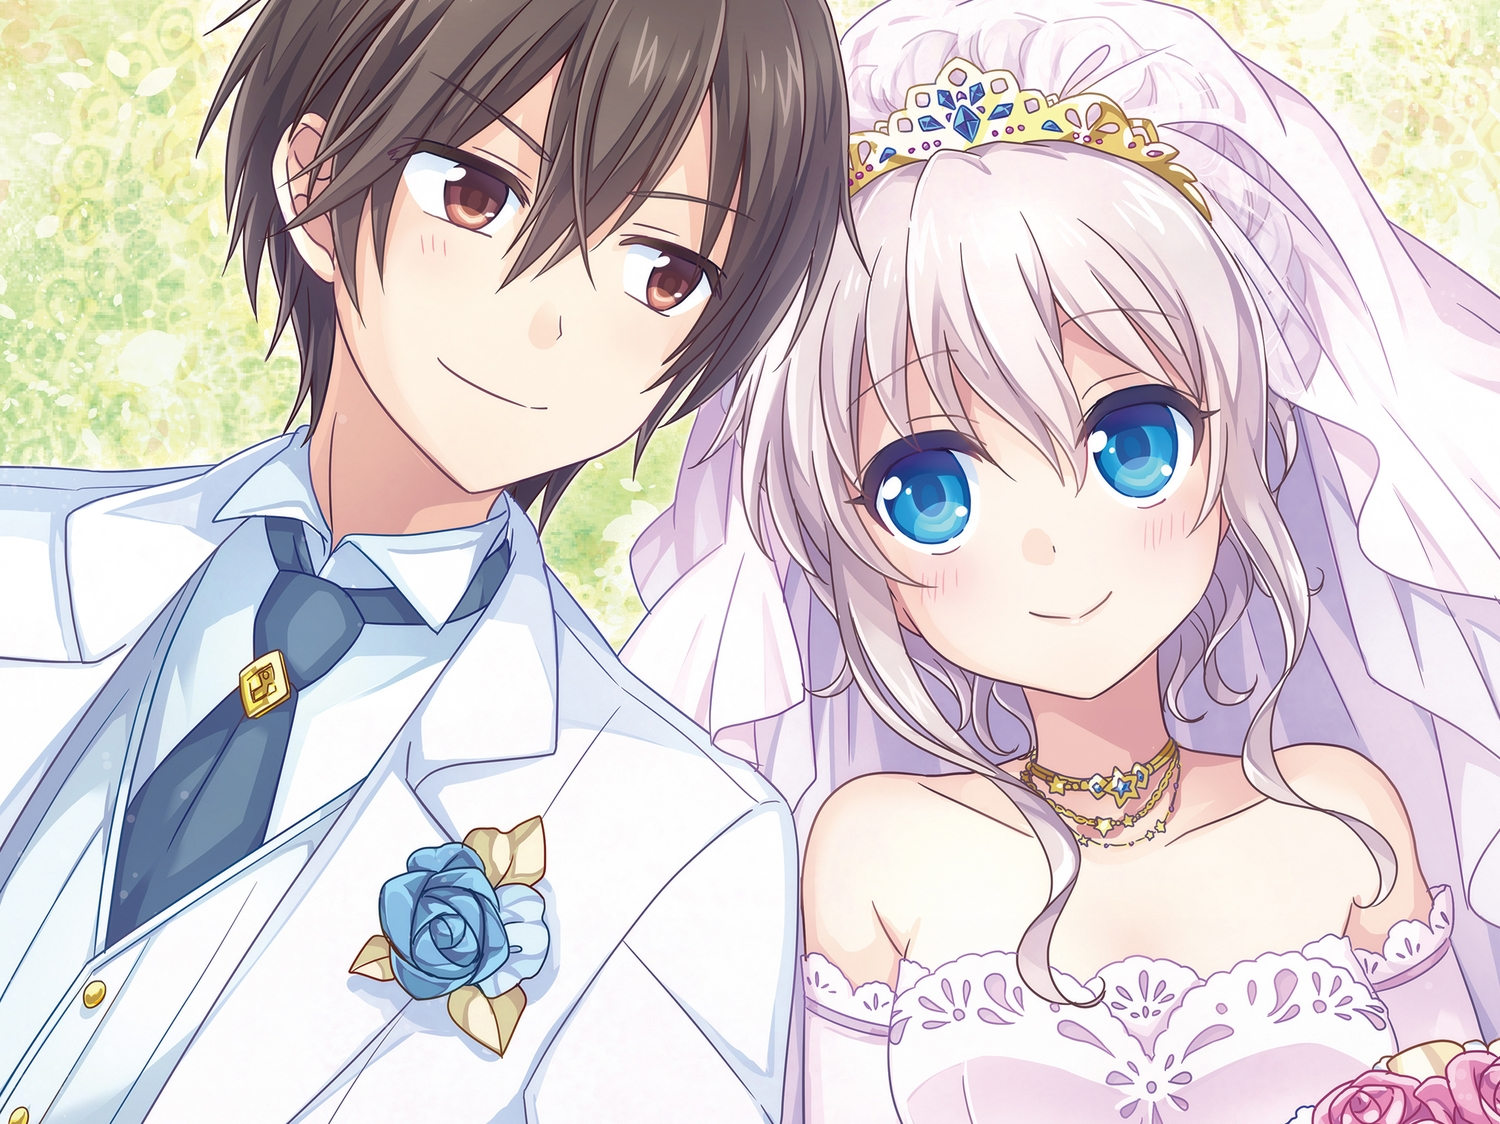 black_hair blue_eyes blush brown_eyes charlotte cropped dress elbow_gloves flowers gloves kousetsu long_hair male otosaka_yuu short_hair tiara tie tomori_nao wedding wedding_attire white_hair